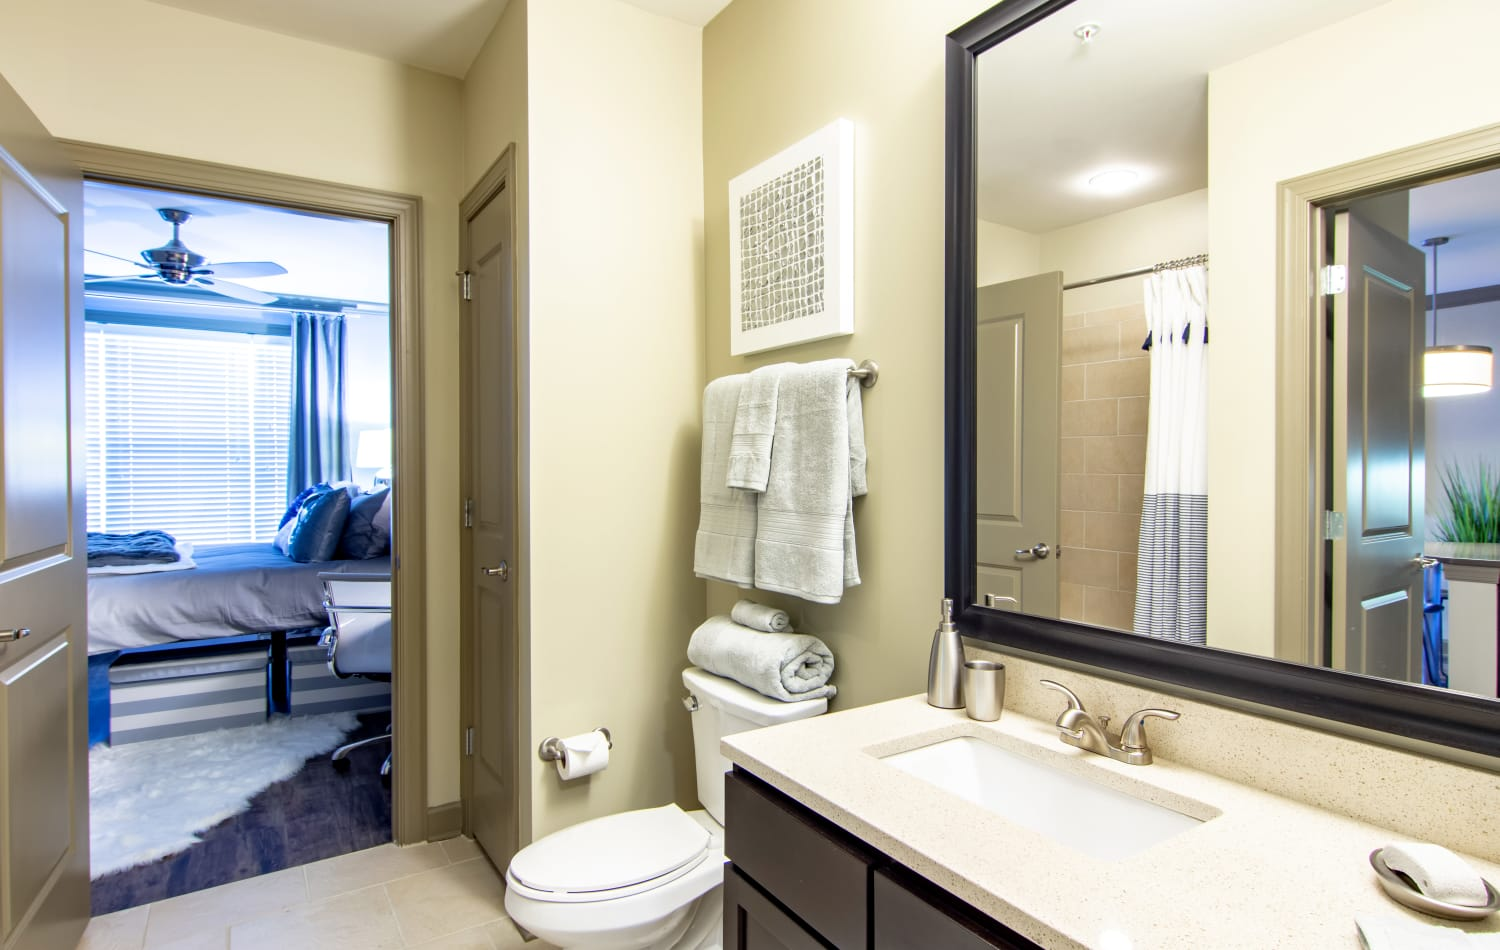 Emory Point offers a modern bathroom in Atlanta, Georgia